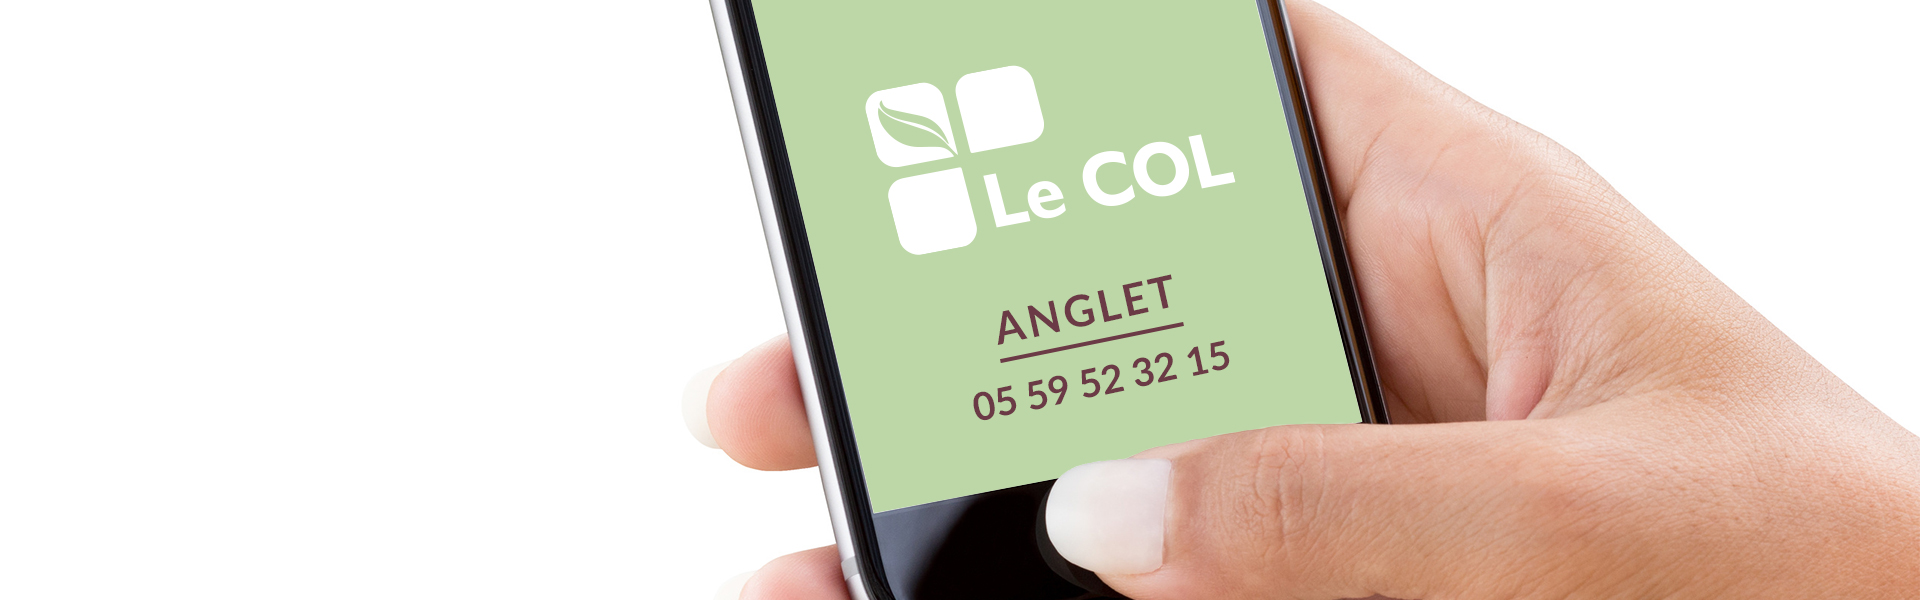 Le-col-bandeau-page-contact-anglet